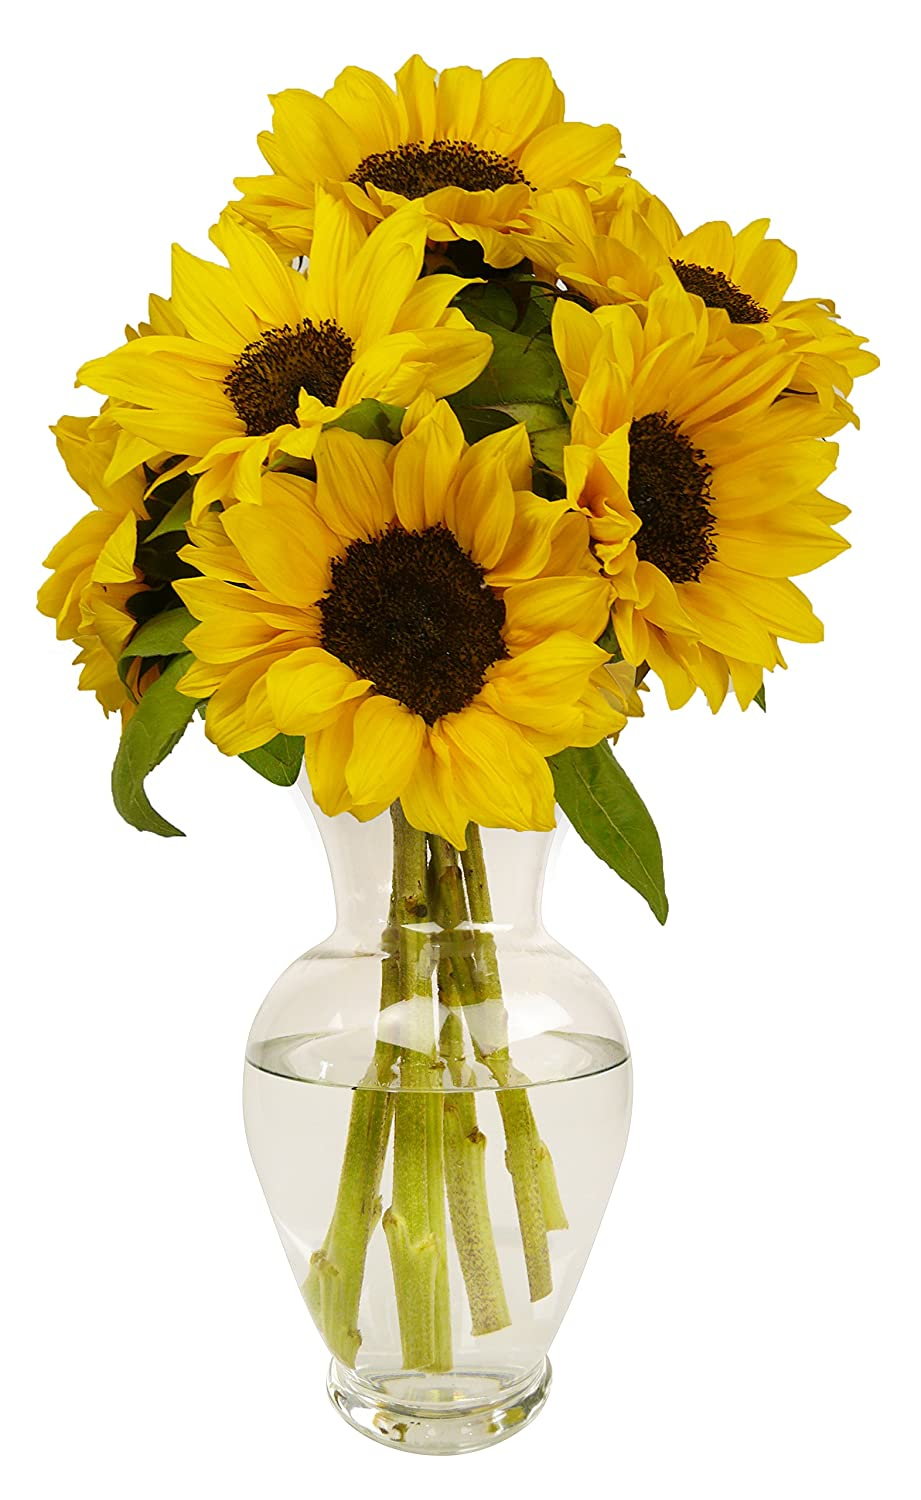 Amazon benchmark bouquets yellow sunflowers with vase amazon benchmark bouquets yellow sunflowers with vase grocery gourmet food mightylinksfo Choice Image